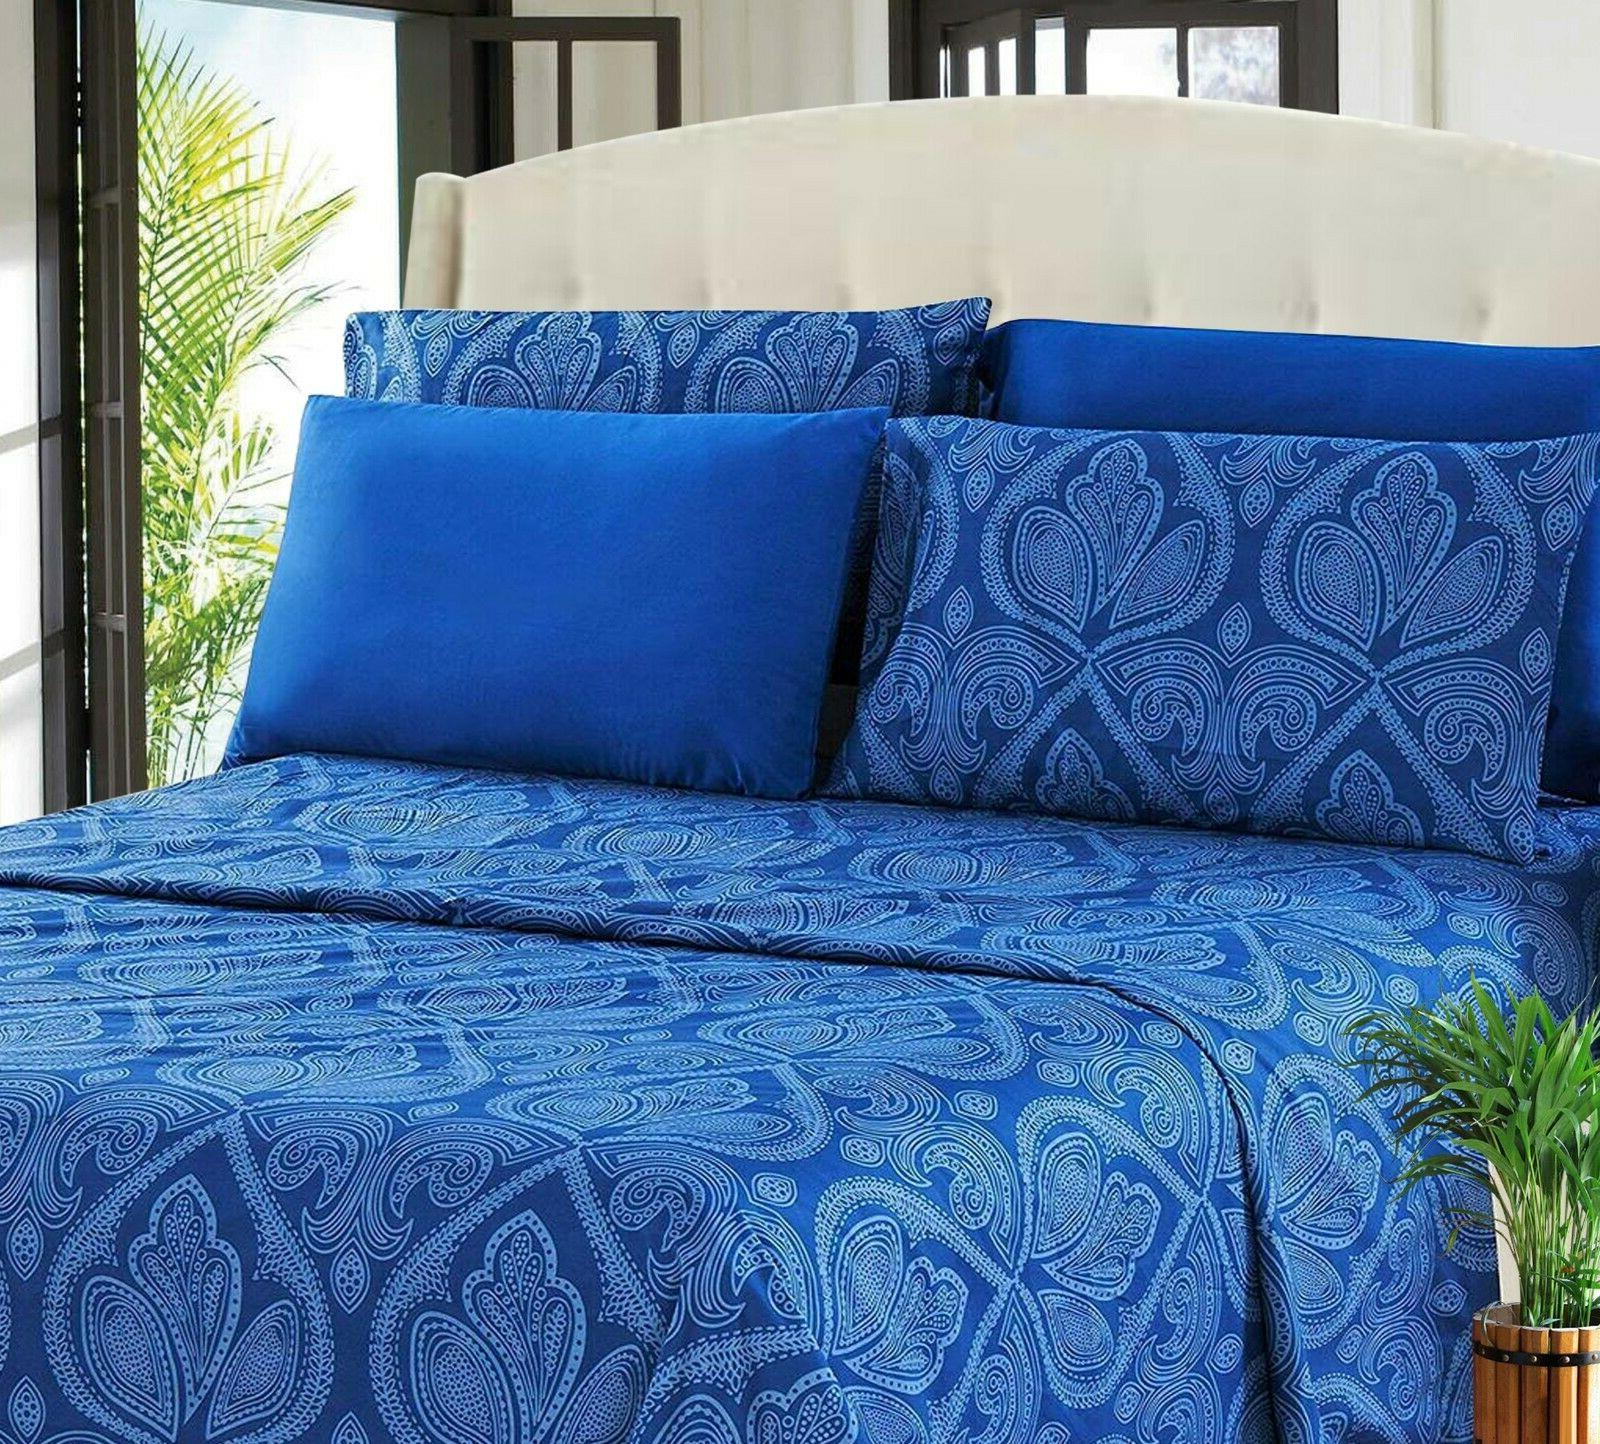 6 soft Bed Sheets Brushed Microfiber Resistant in Sizes